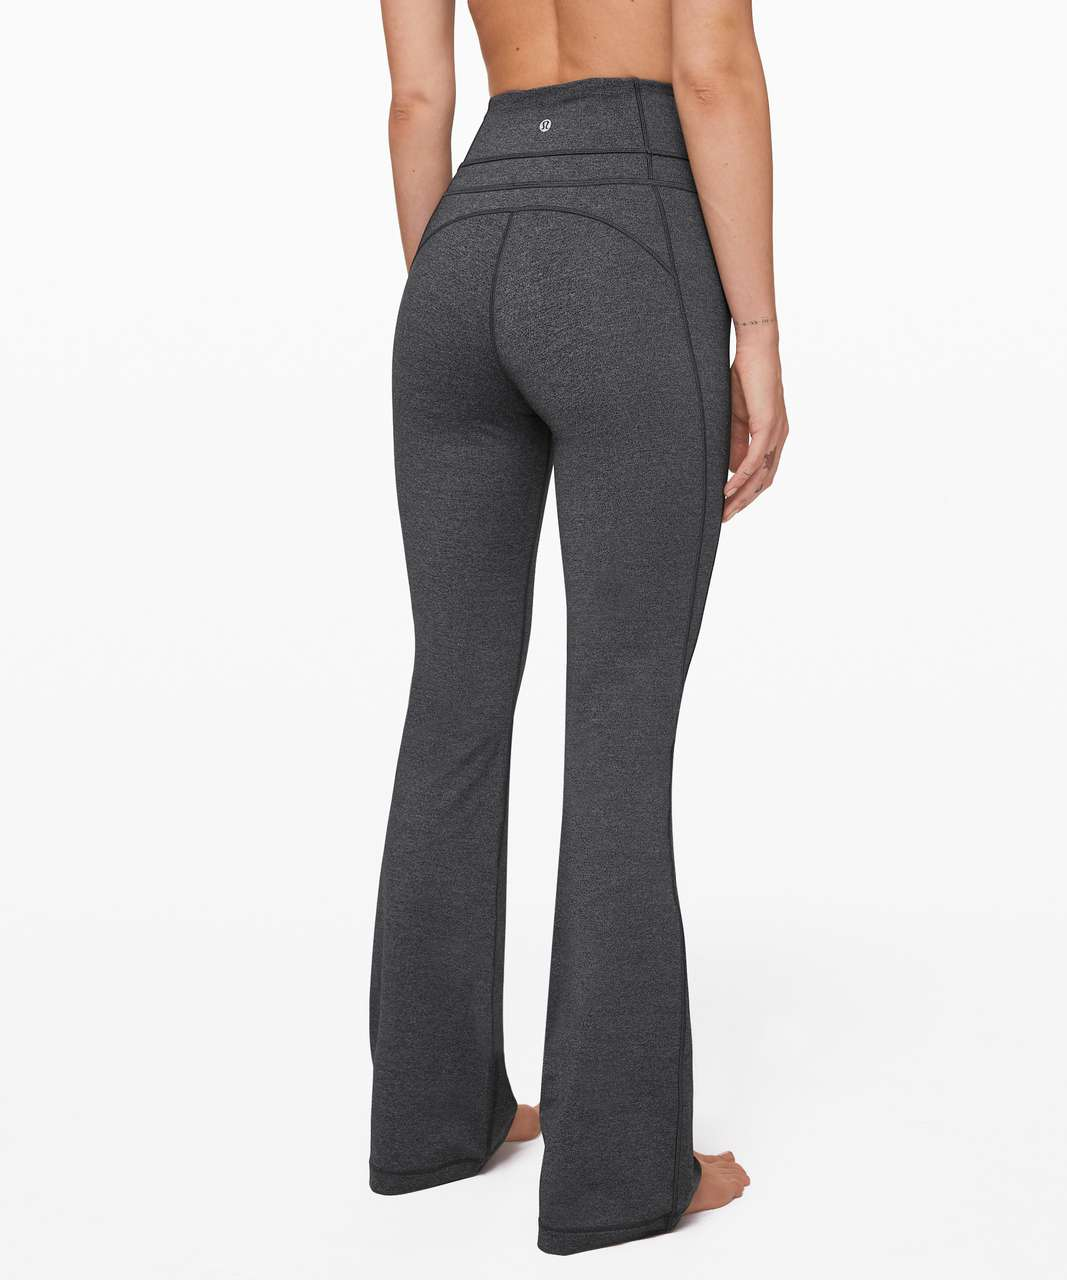 "Lululemon Groove Pant Flare 32"" - Heathered Black"